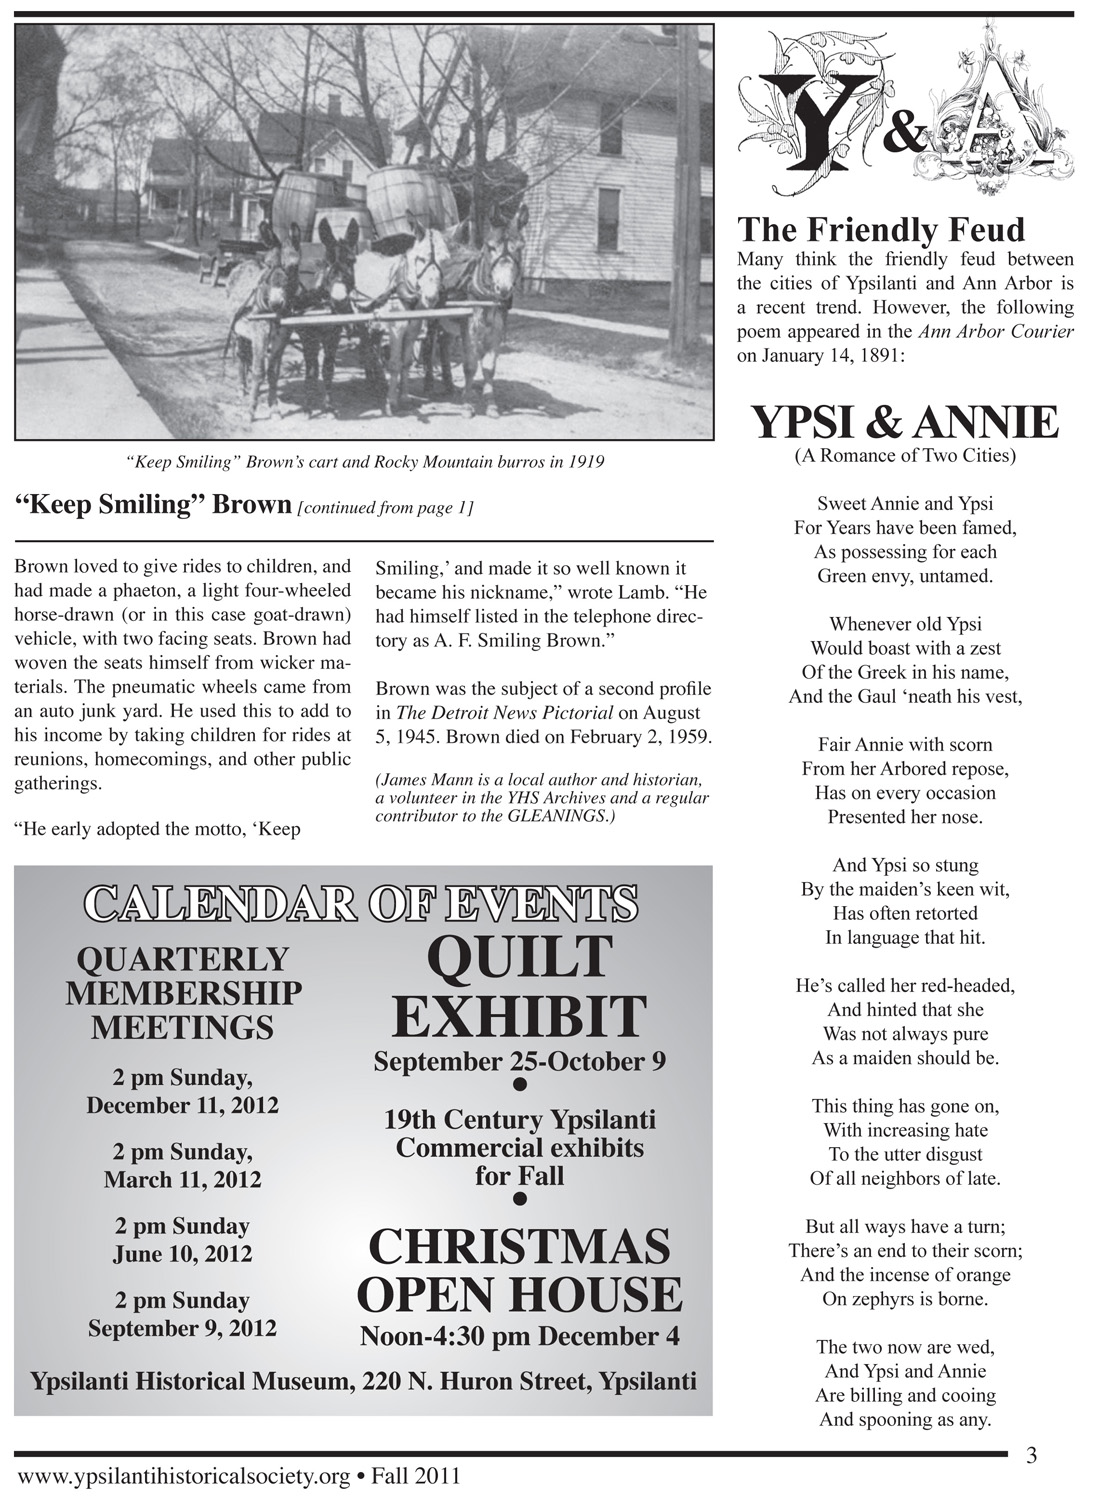 "The Friendly Feud -- ""Ypsi and Annie"" in 1891 Poetry image"